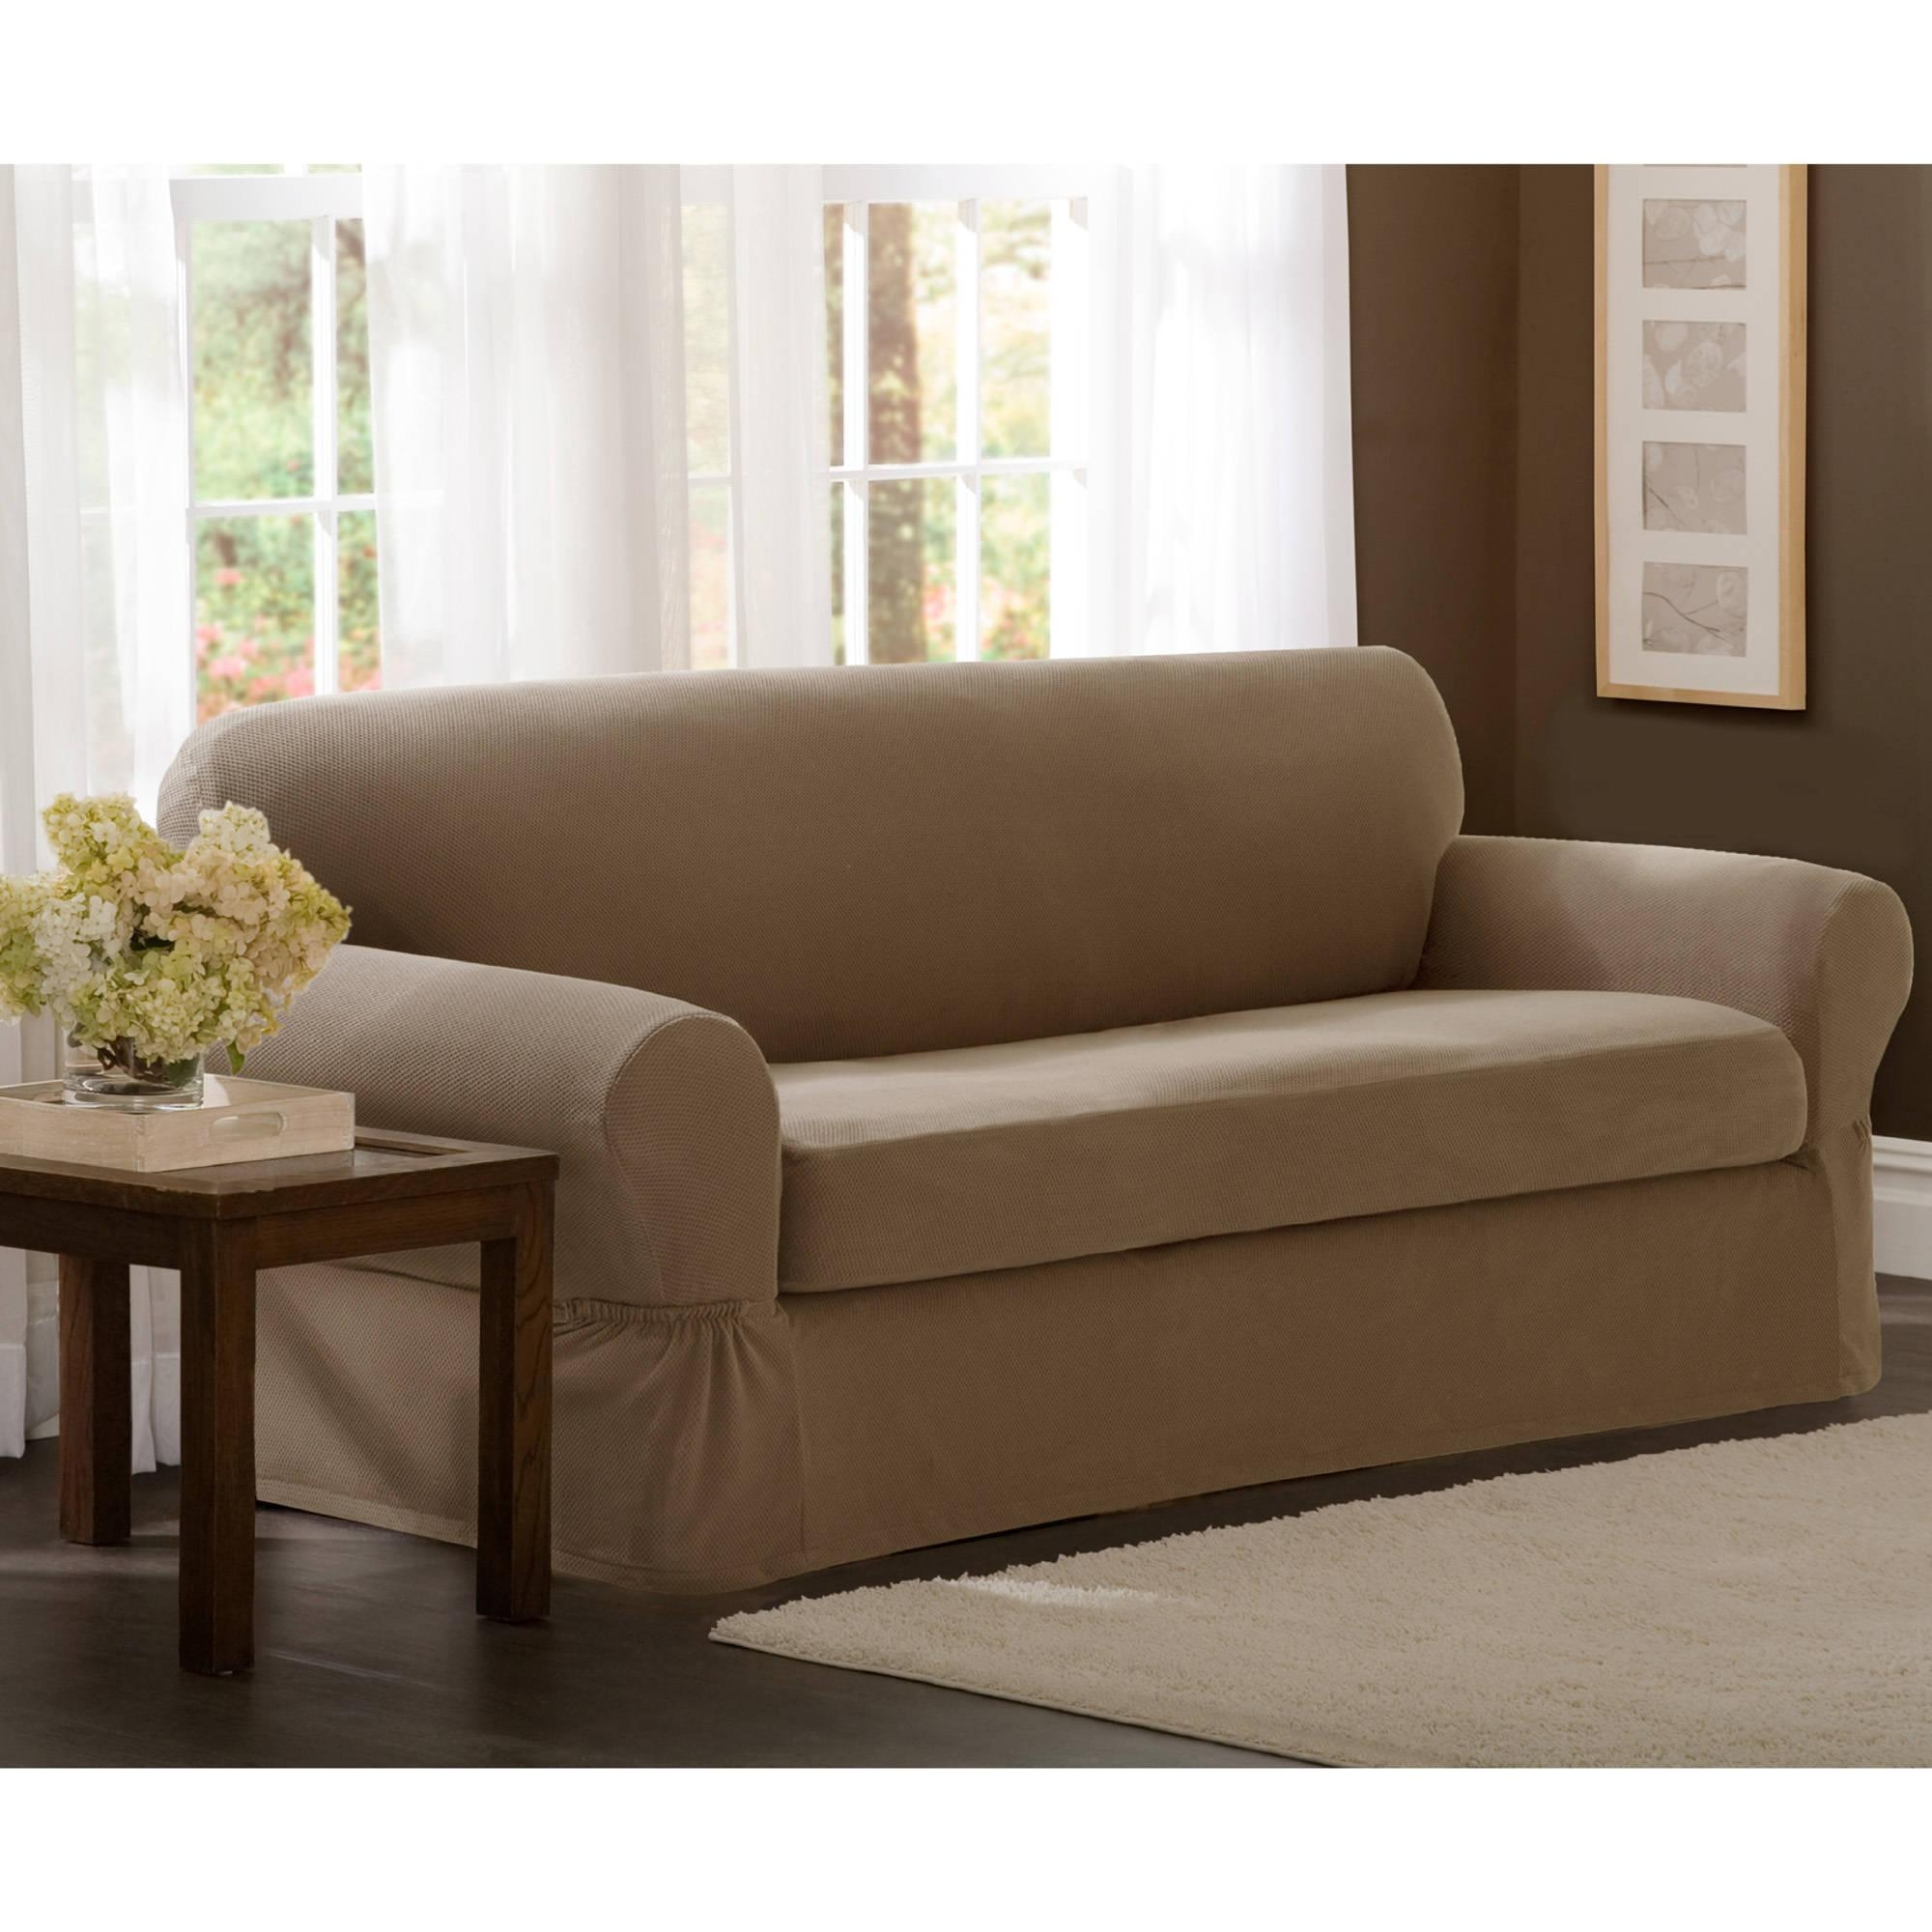 Sofas Center : Staggeringvas Sofa Slipcover Photo Design Two Piece Throughout Canvas Slipcover Sofas (Image 18 of 20)